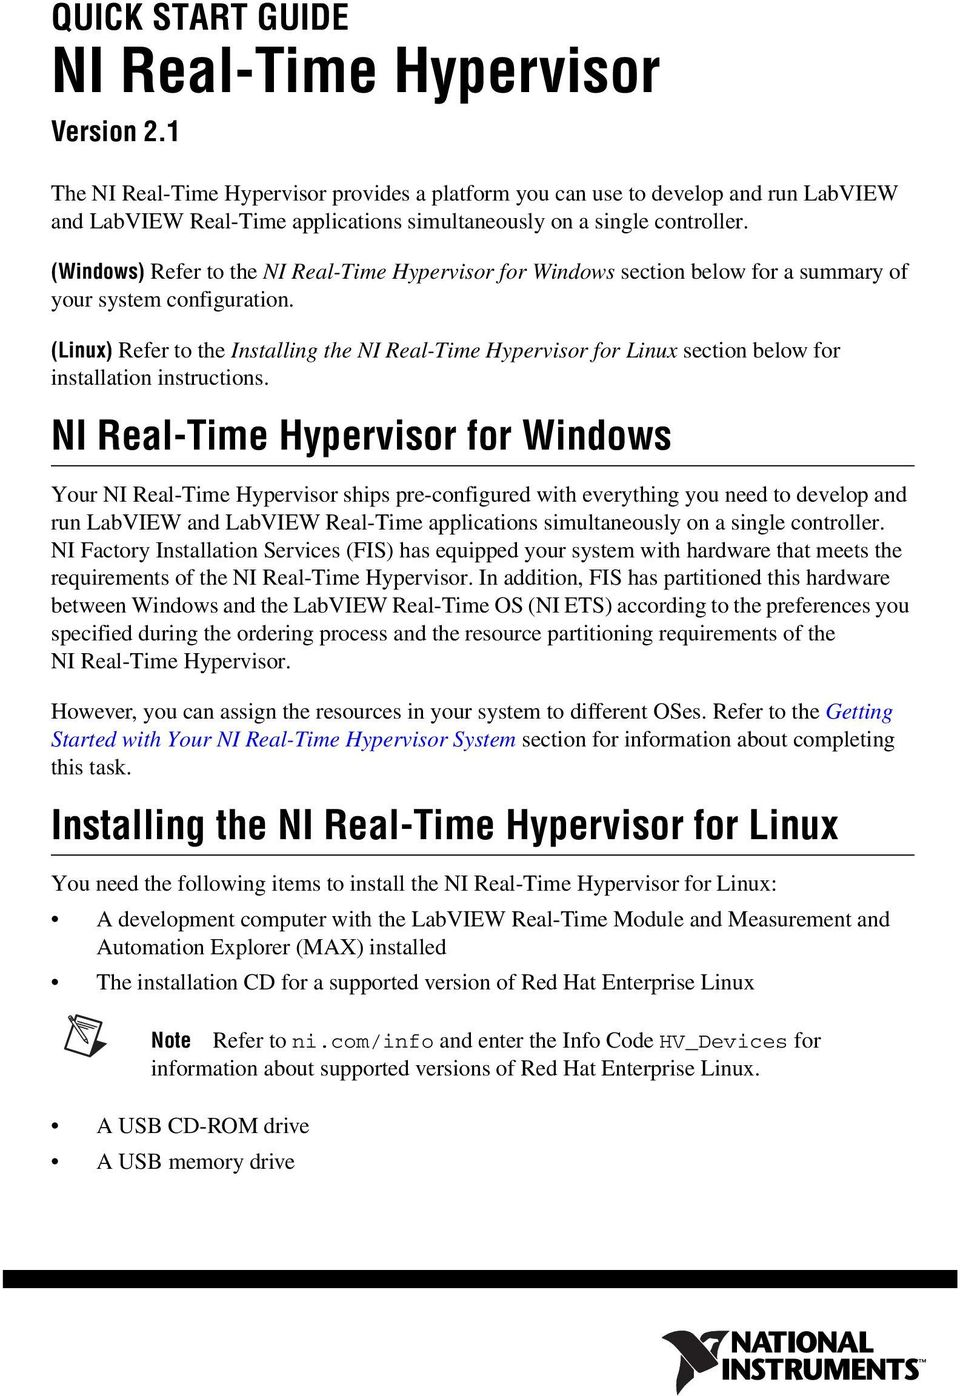 (Windows) Refer to the NI Real-Time Hypervisor for Windows section below for a summary of your system configuration.